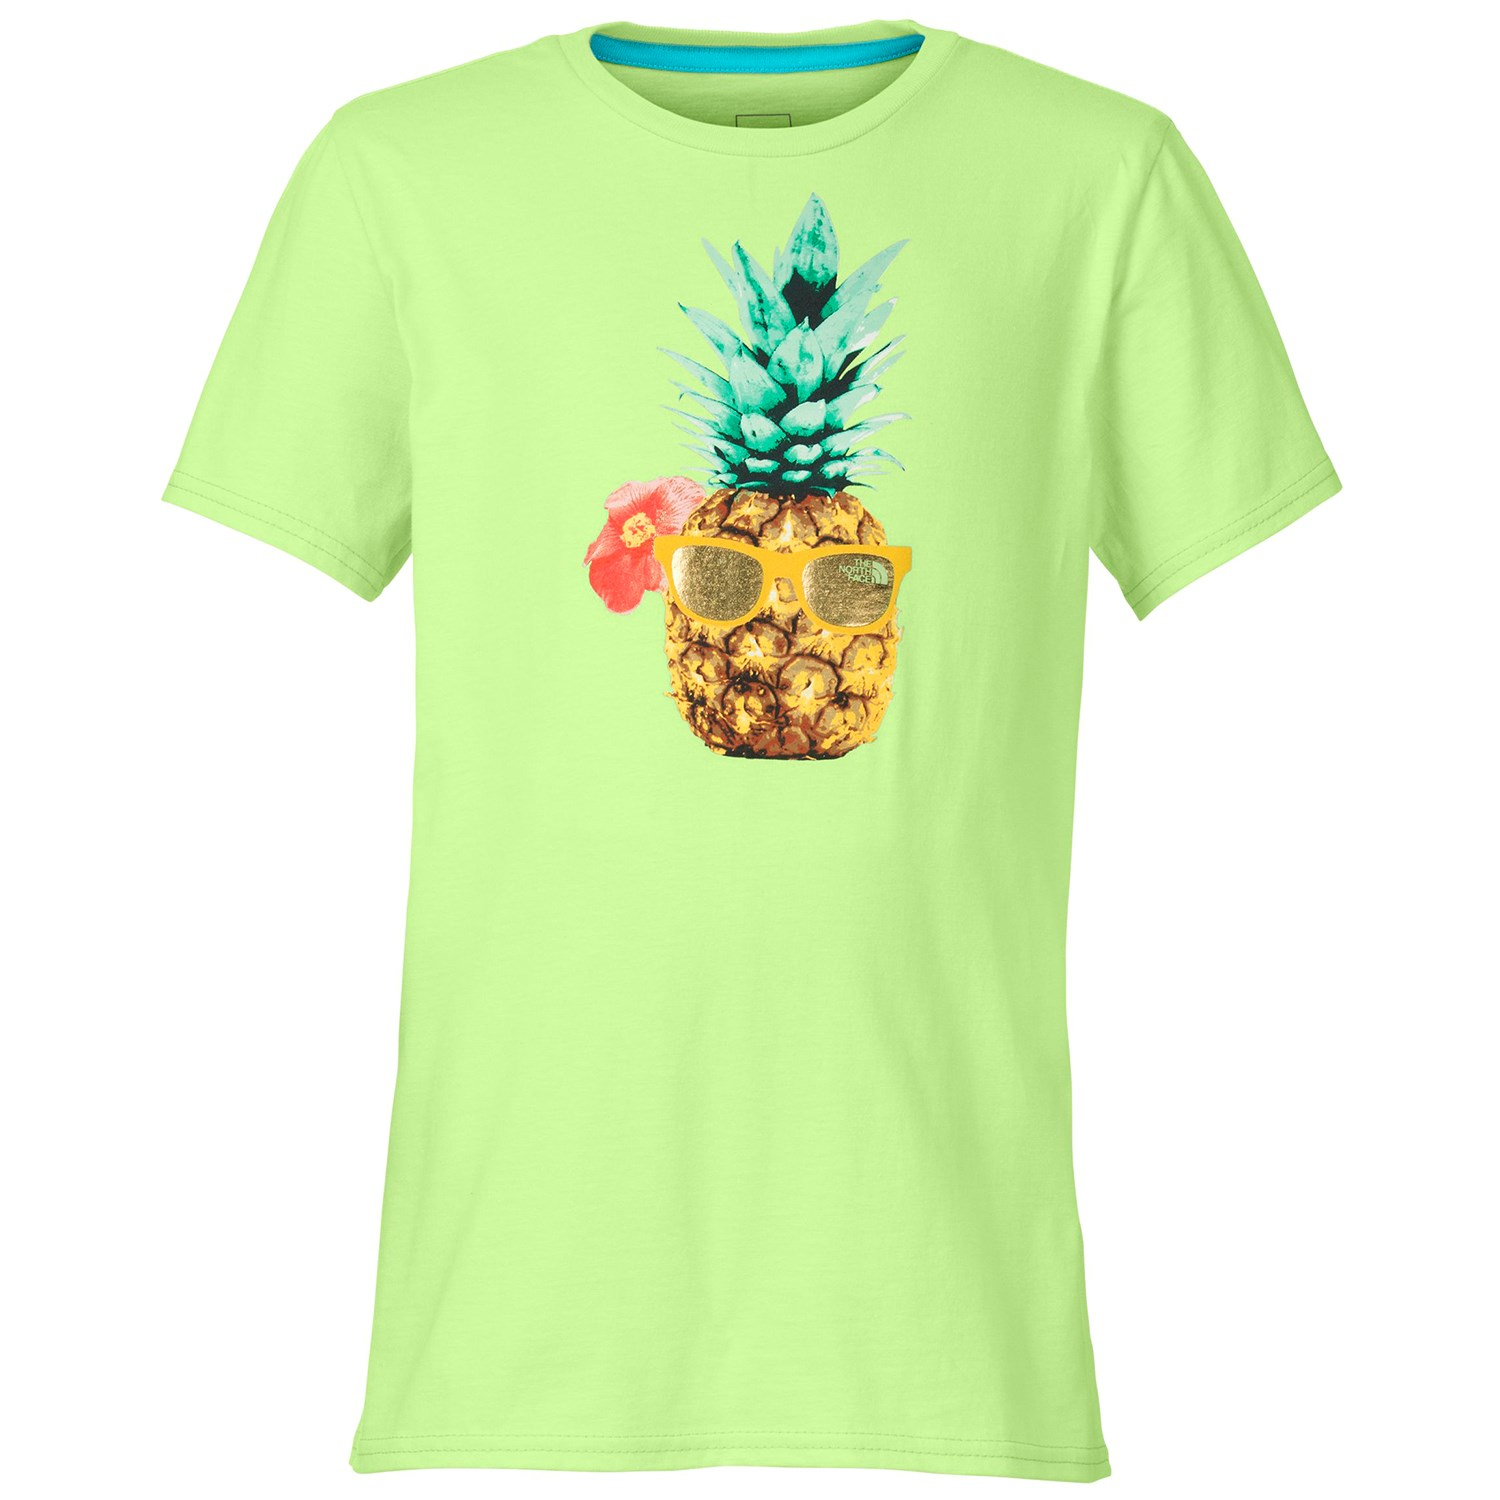 6ac5781f7 The North Face Short-Sleeve Graphic T-Shirt - Girls' | evo